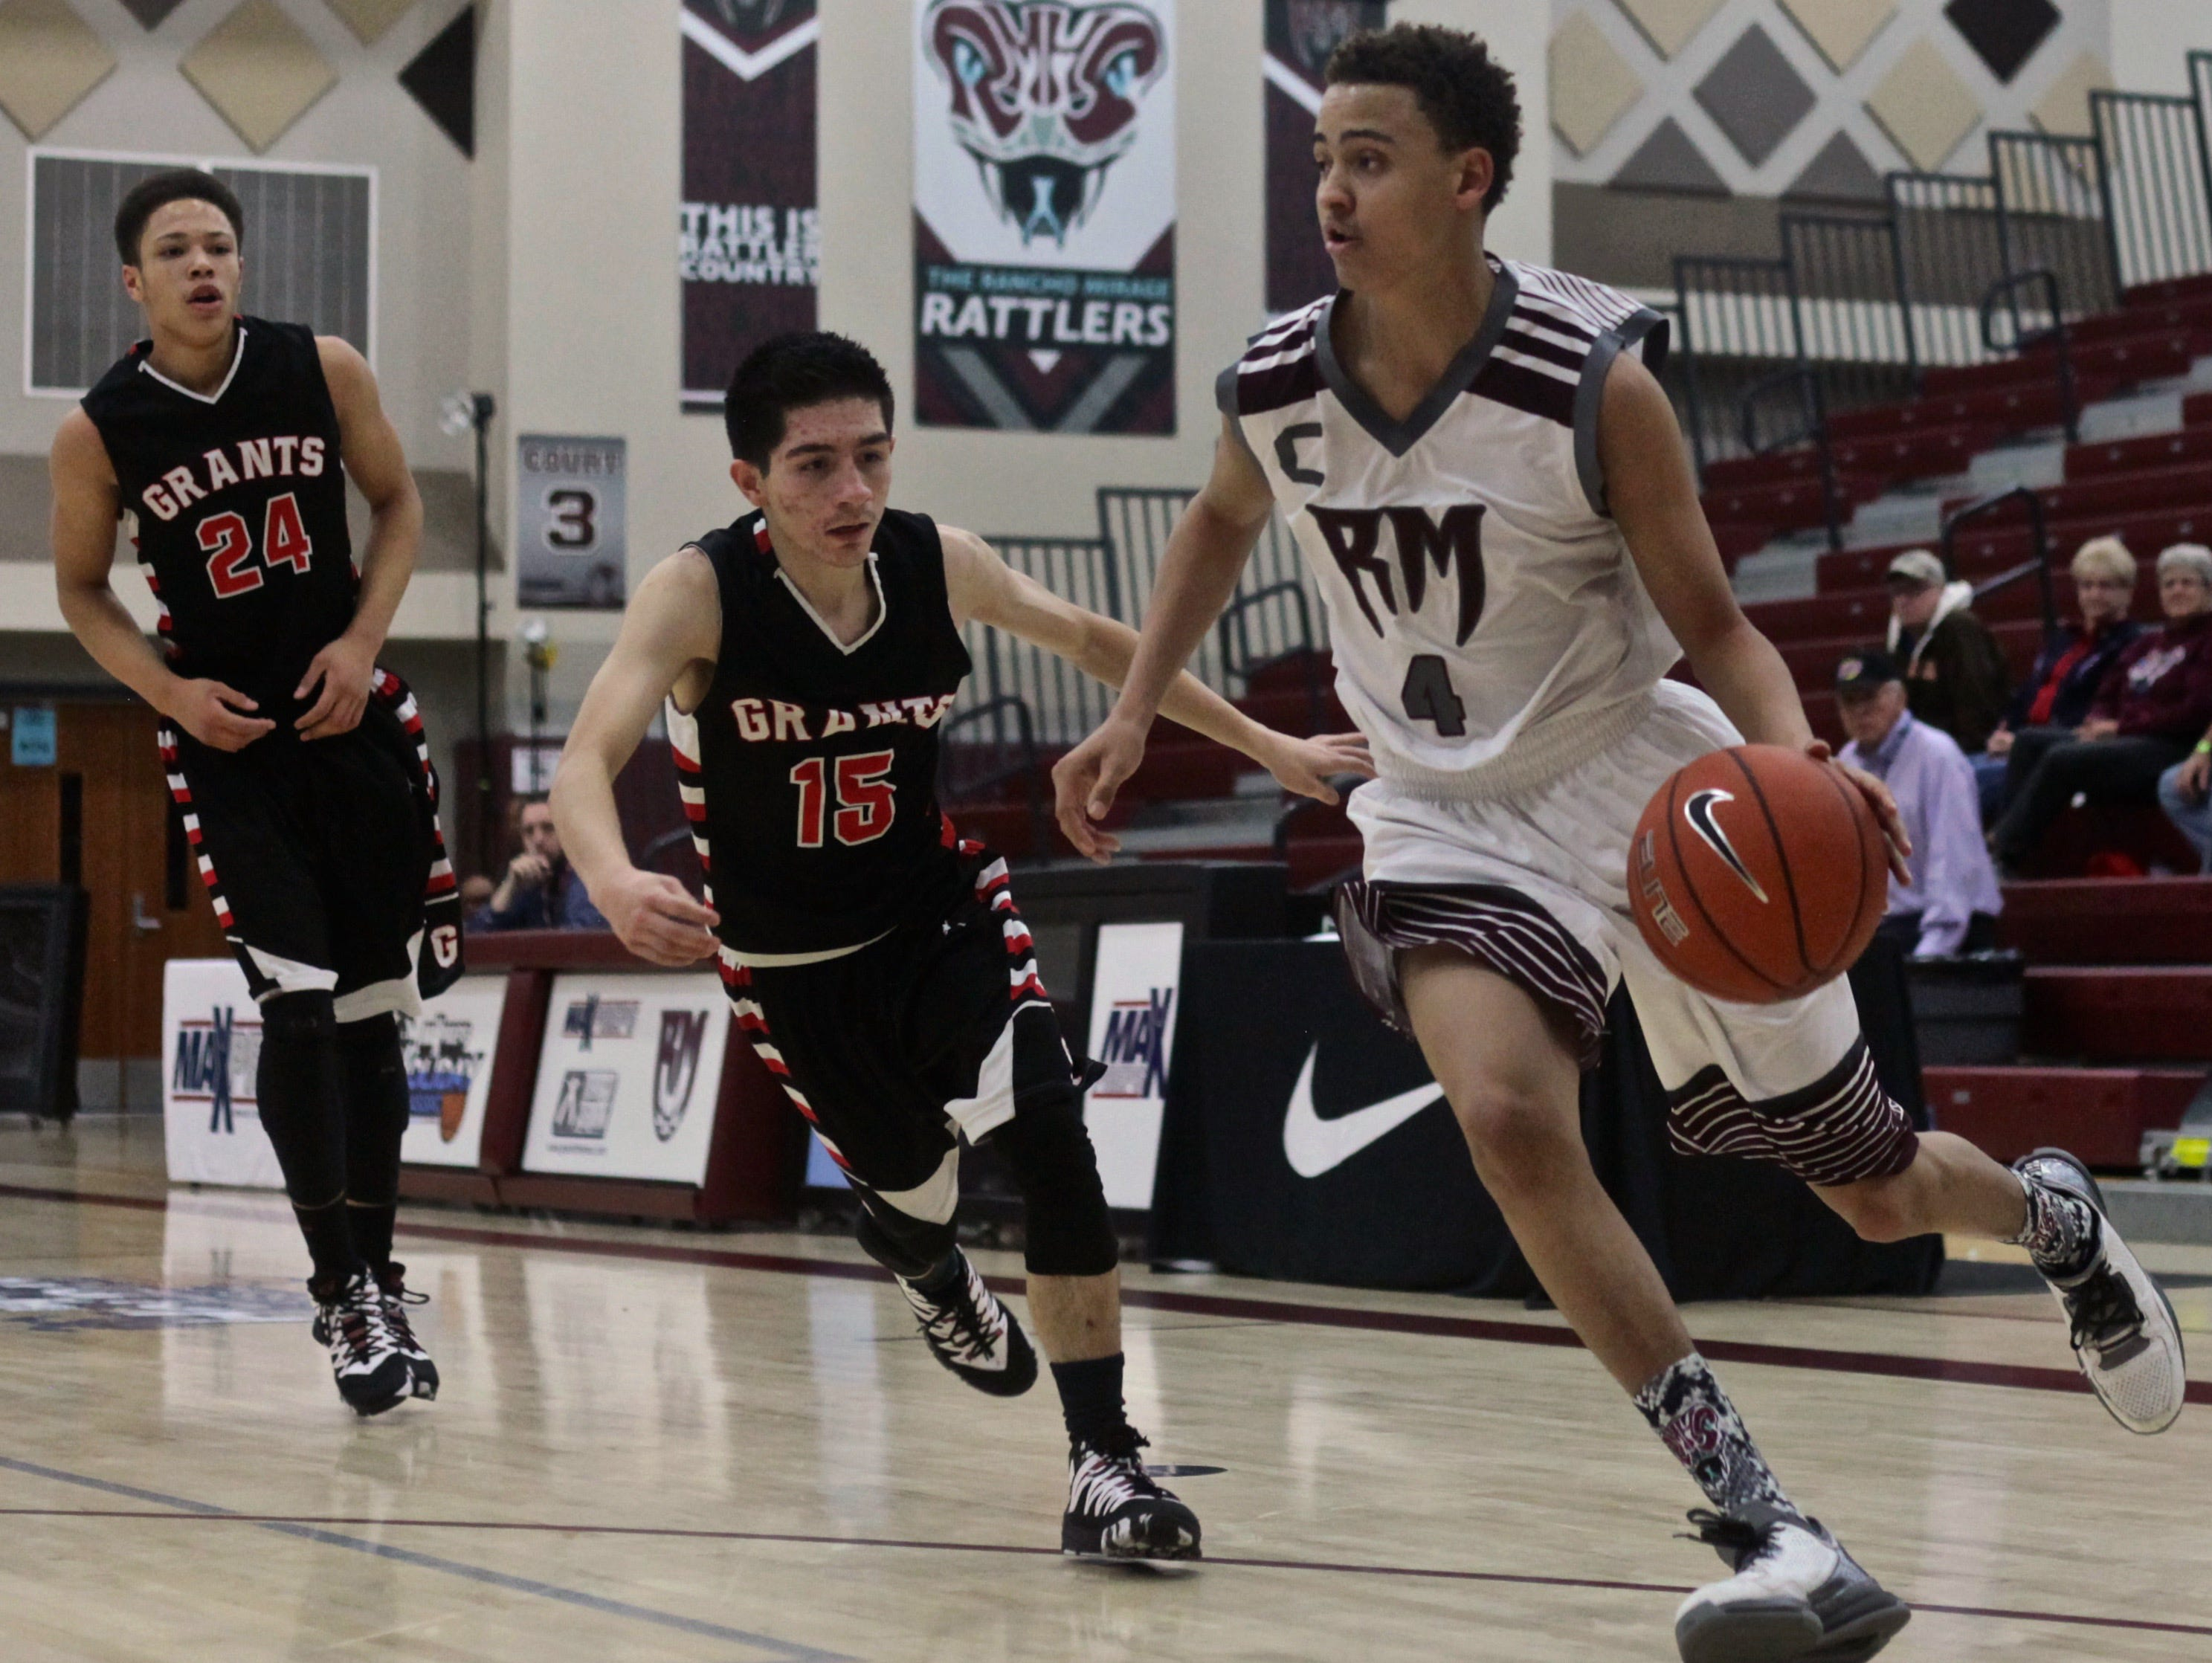 Rancho Mirage's Charles Neal (4) attempts to evade Grants' Eric Gonzales (15) during the Design Pro Division championship game of the MaxPreps Holiday Classic on Wednesday, Dec. 30, 2015.